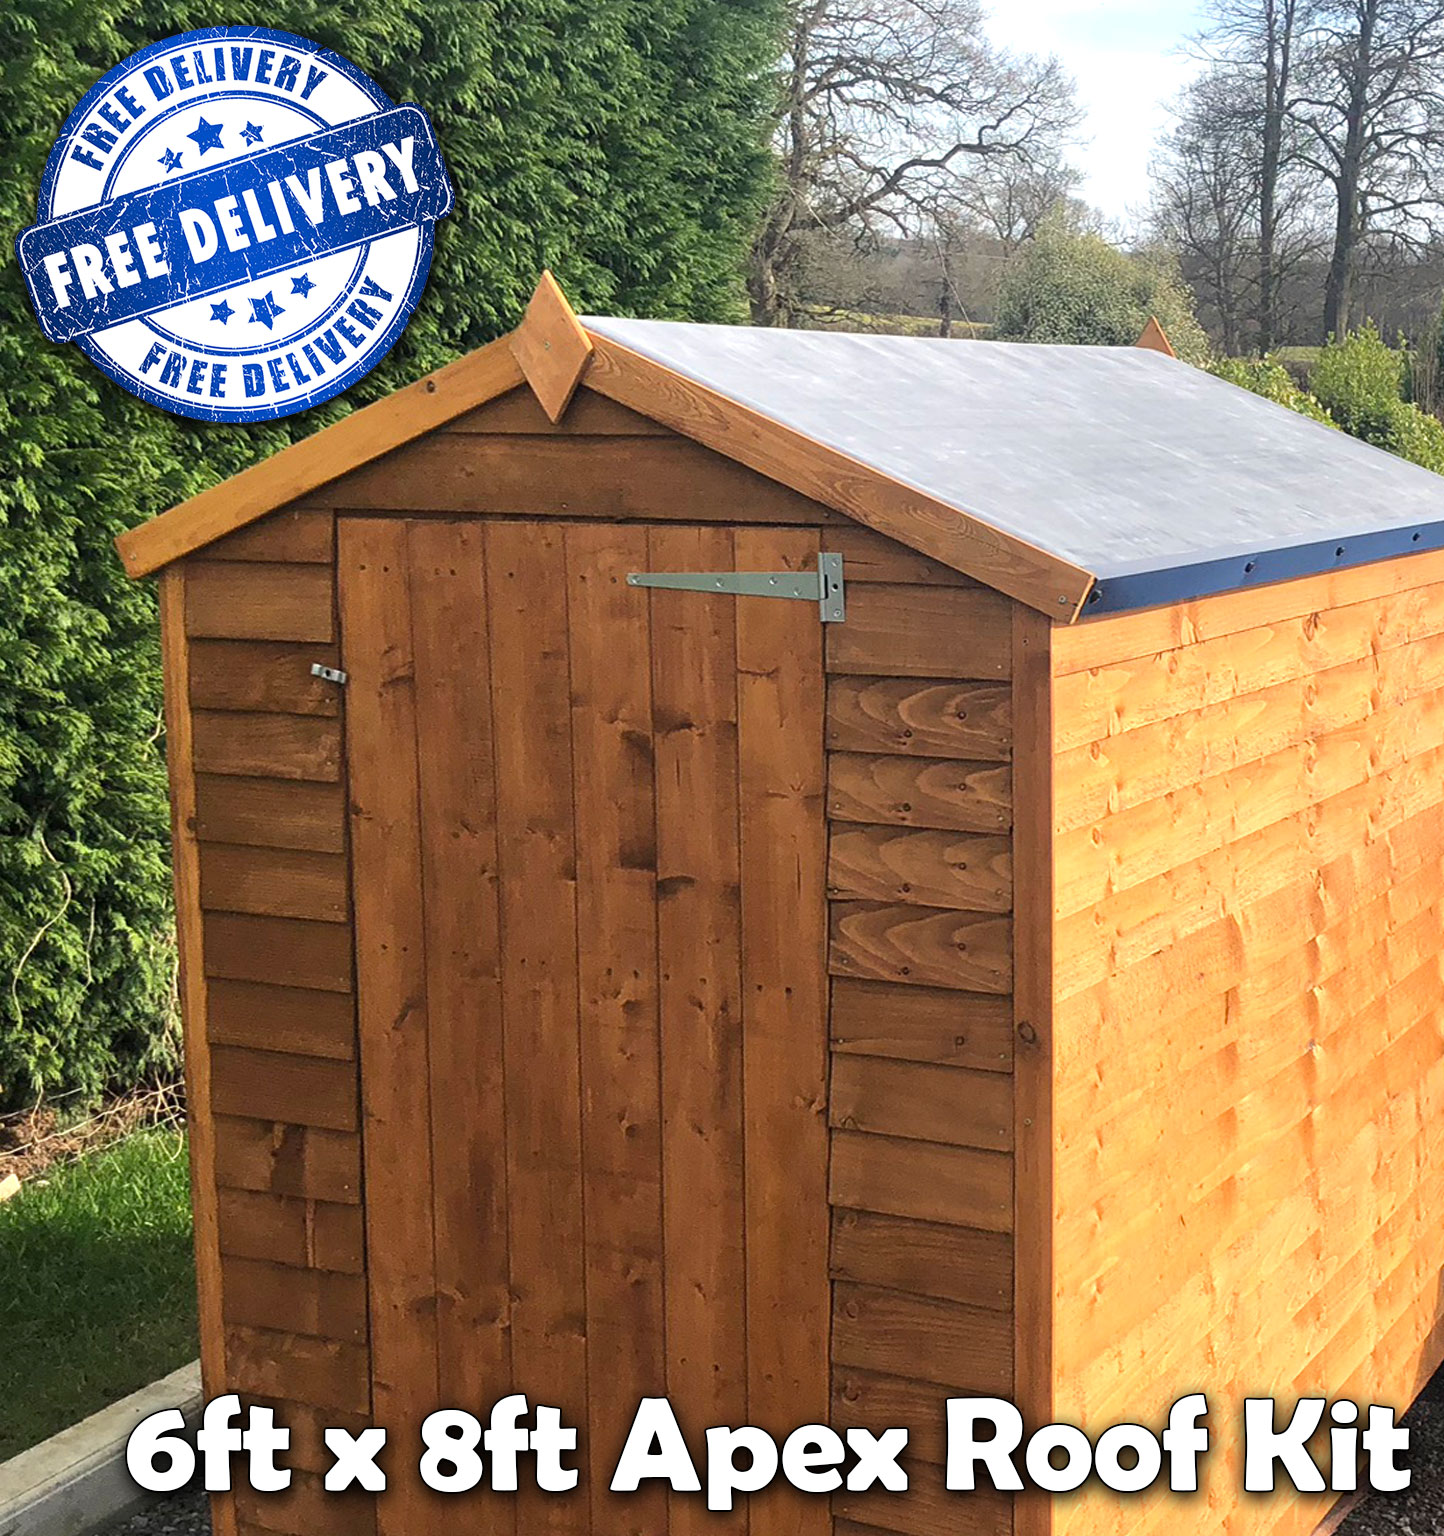 Buy Rubber Roofing For Your Shed Repair Shed Roof